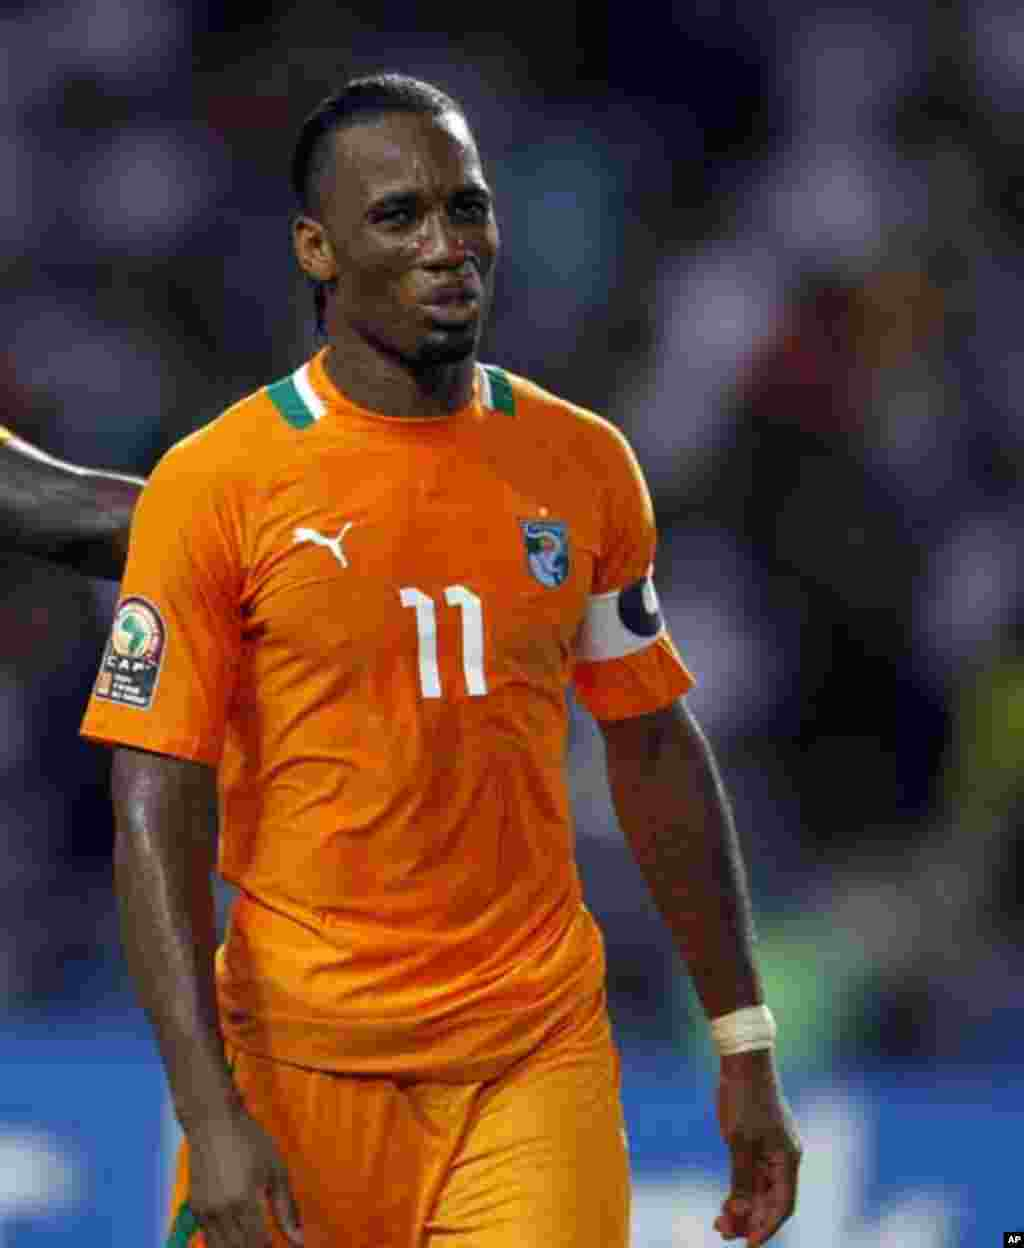 Ivory Coast's captain Didier Drogba reacts after missing a penalty during their African Nations Cup final soccer match against Zambia at the Stade De L'Amitie Stadium in Gabon's capital Libreville, February 12, 2012.